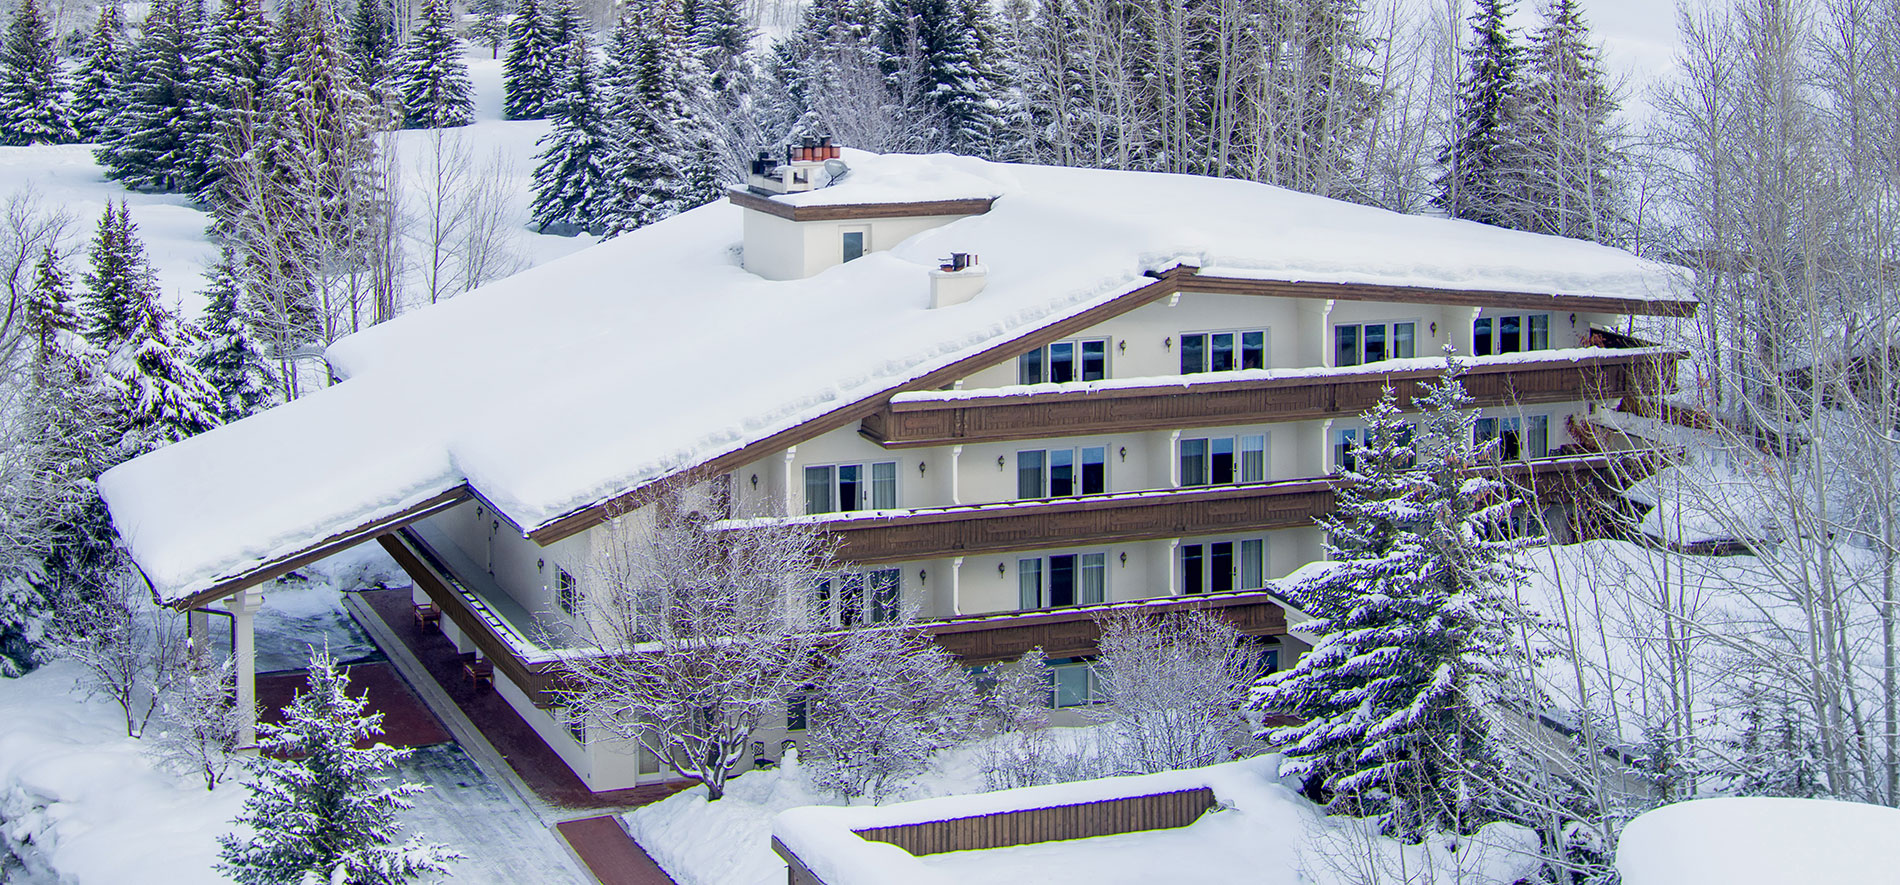 SUN VALLEY'S PREMIER BOUTIQUE HOTEL